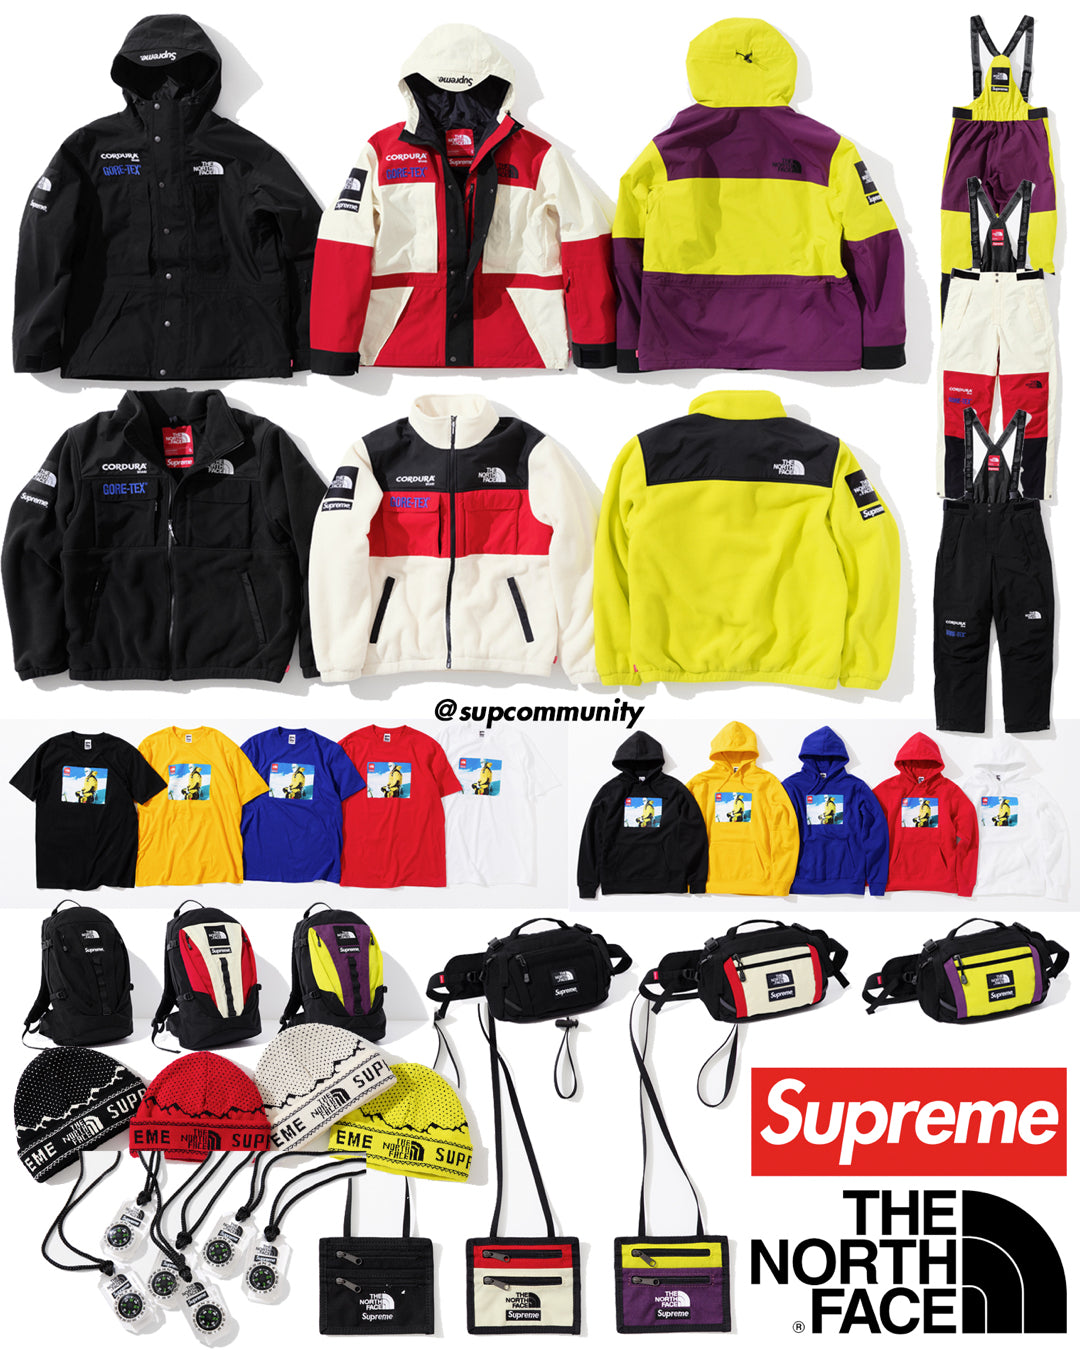 Supreme Week 15 Retail Prices and Droplist - The North Face